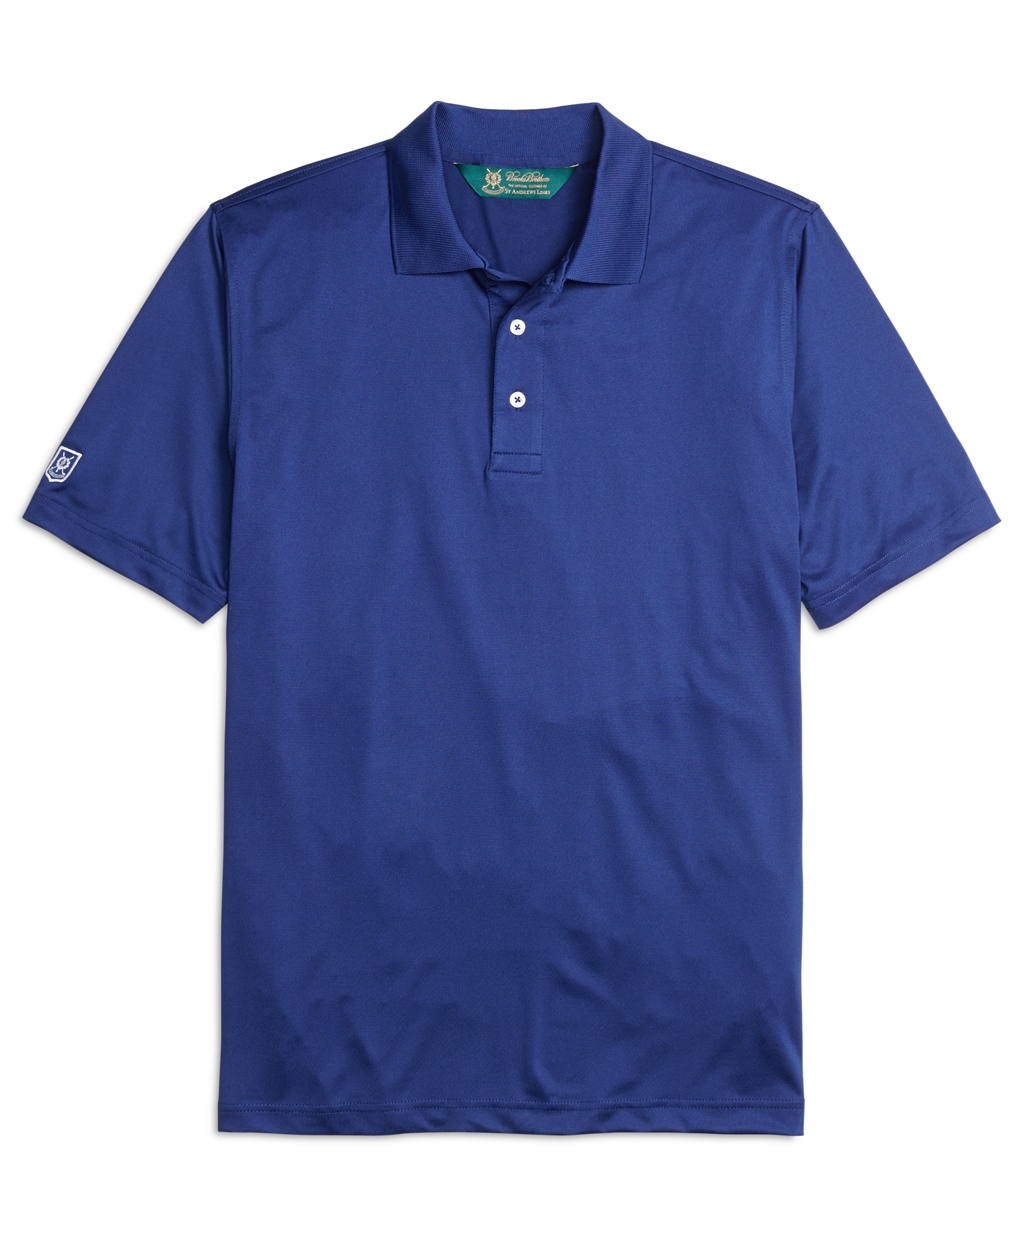 301 moved permanently Brooks brothers shirt size guide